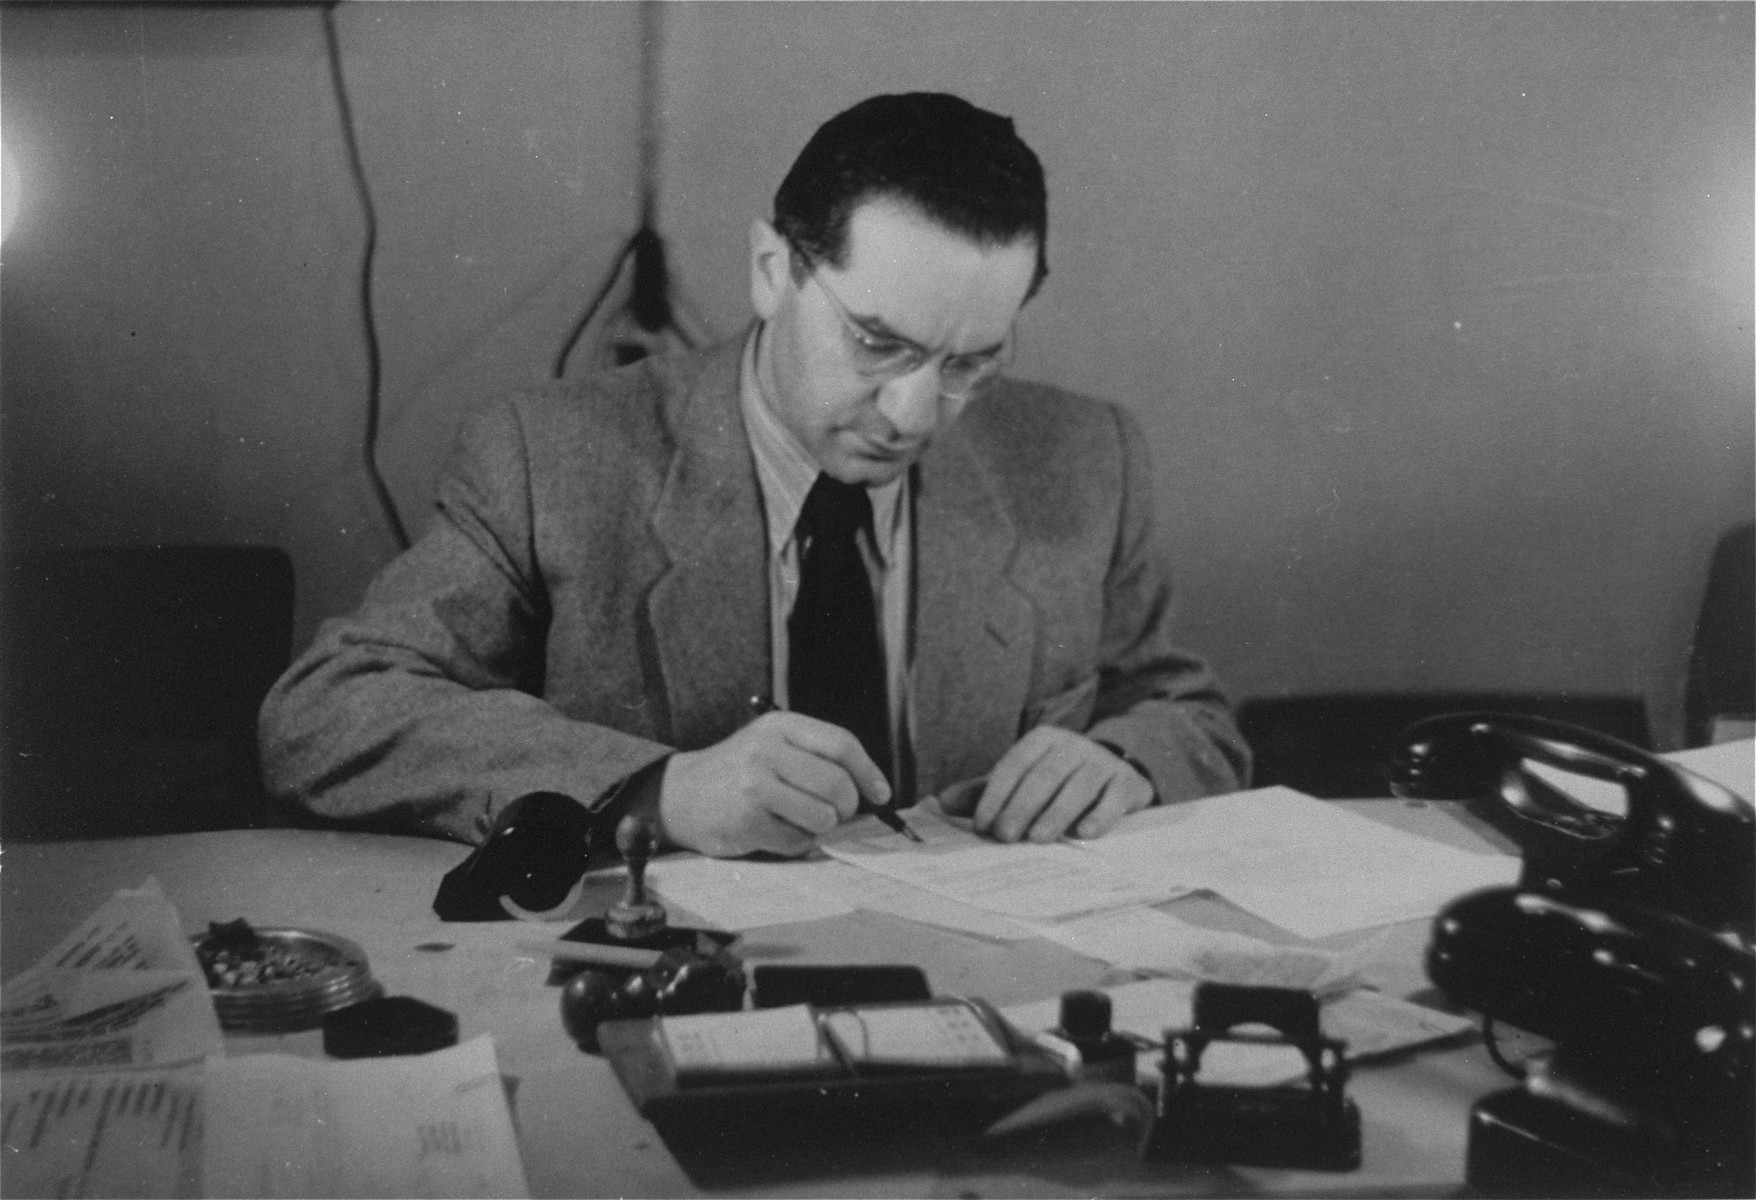 Chief medical officer, Dr. Naum Wortman, at his desk in the Ebelsberg displaced persons camp.